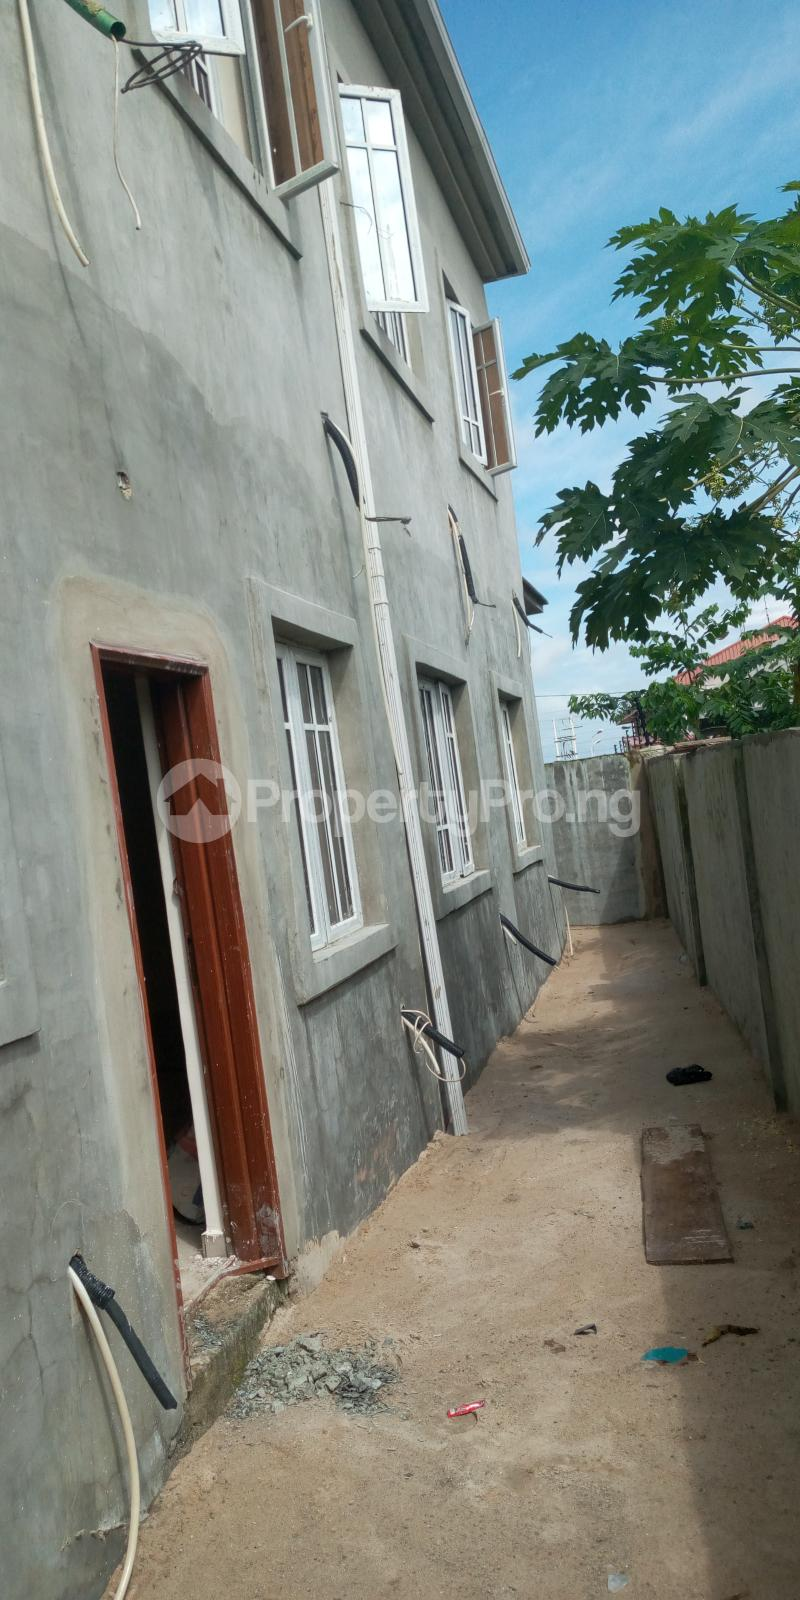 School Commercial Property for sale Eputu Ibeju-Lekki Lagos - 3